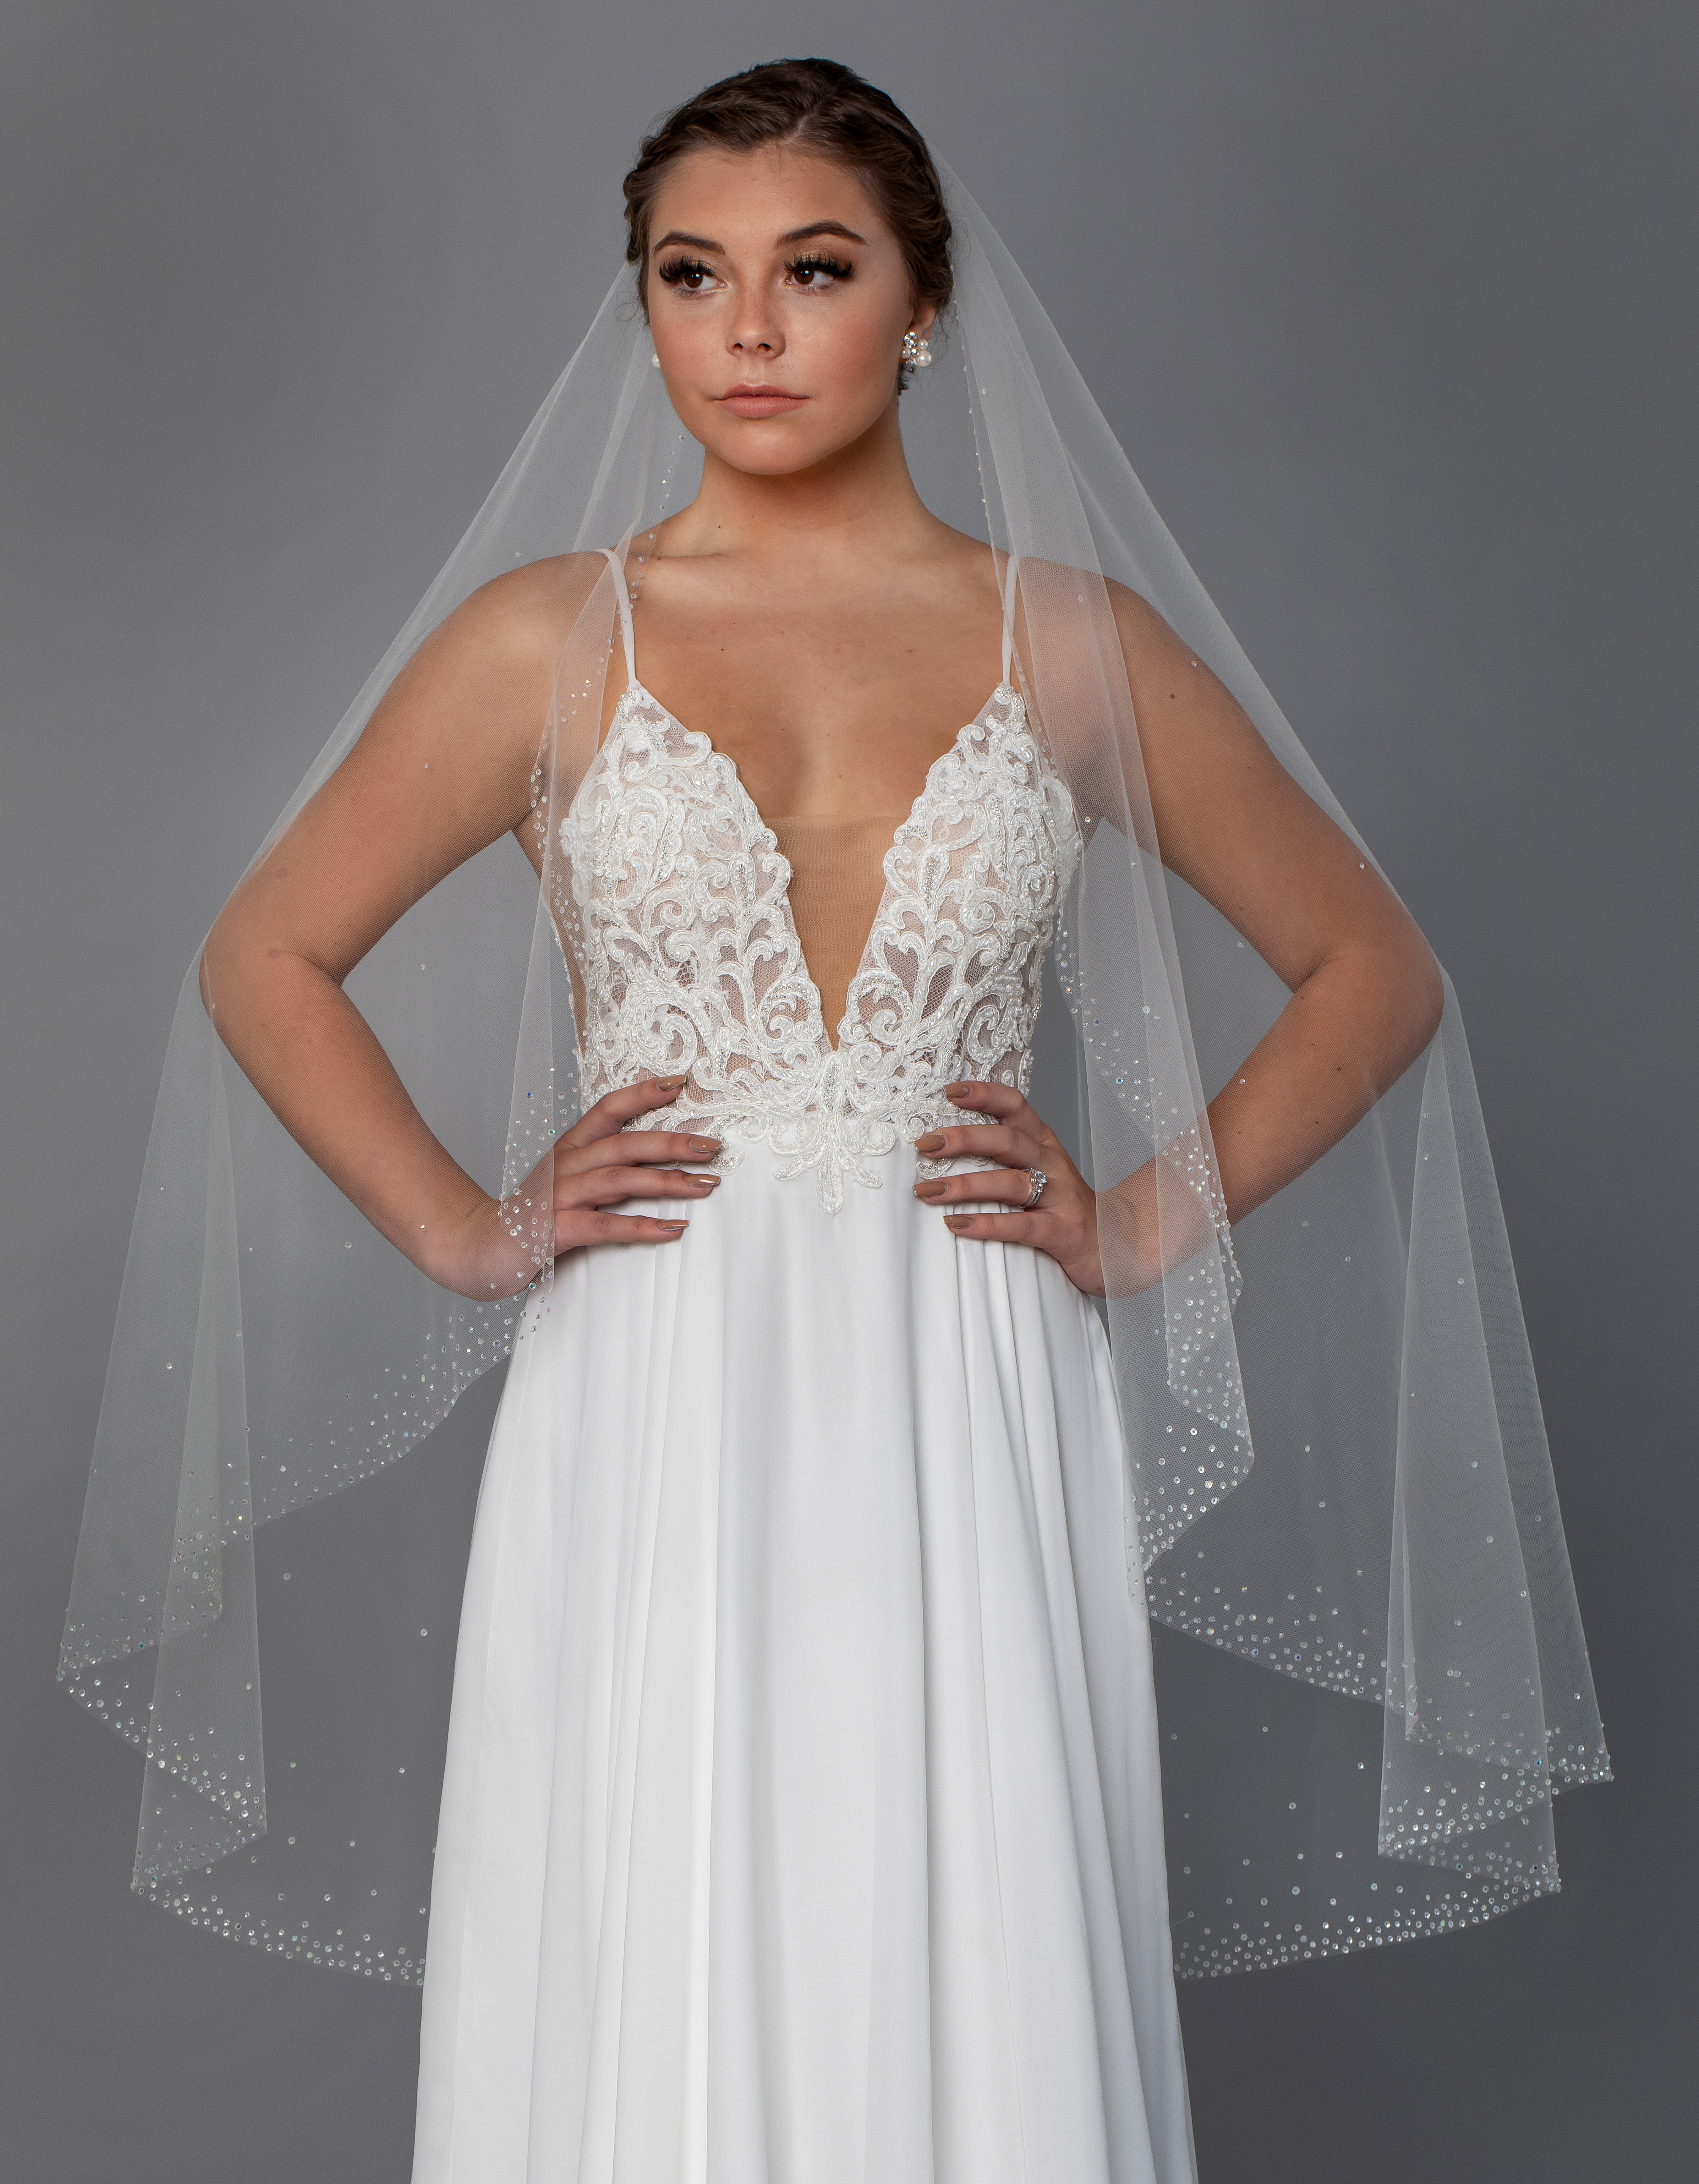 Bridal Classics Marquise Veil Collection MV-2484